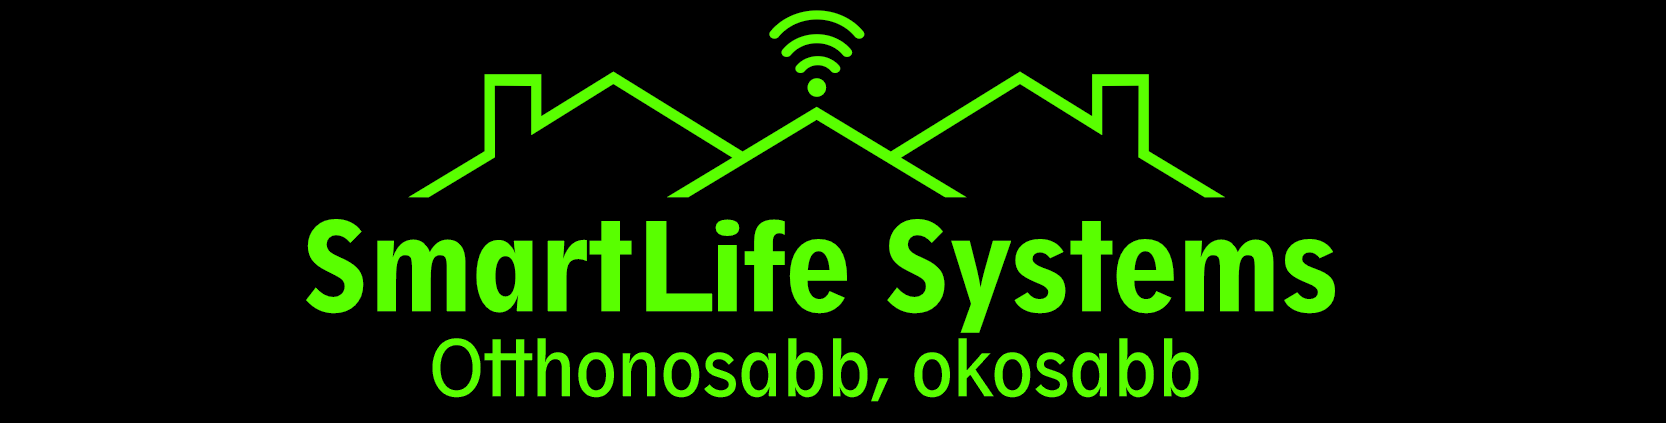 SmartLife Systems